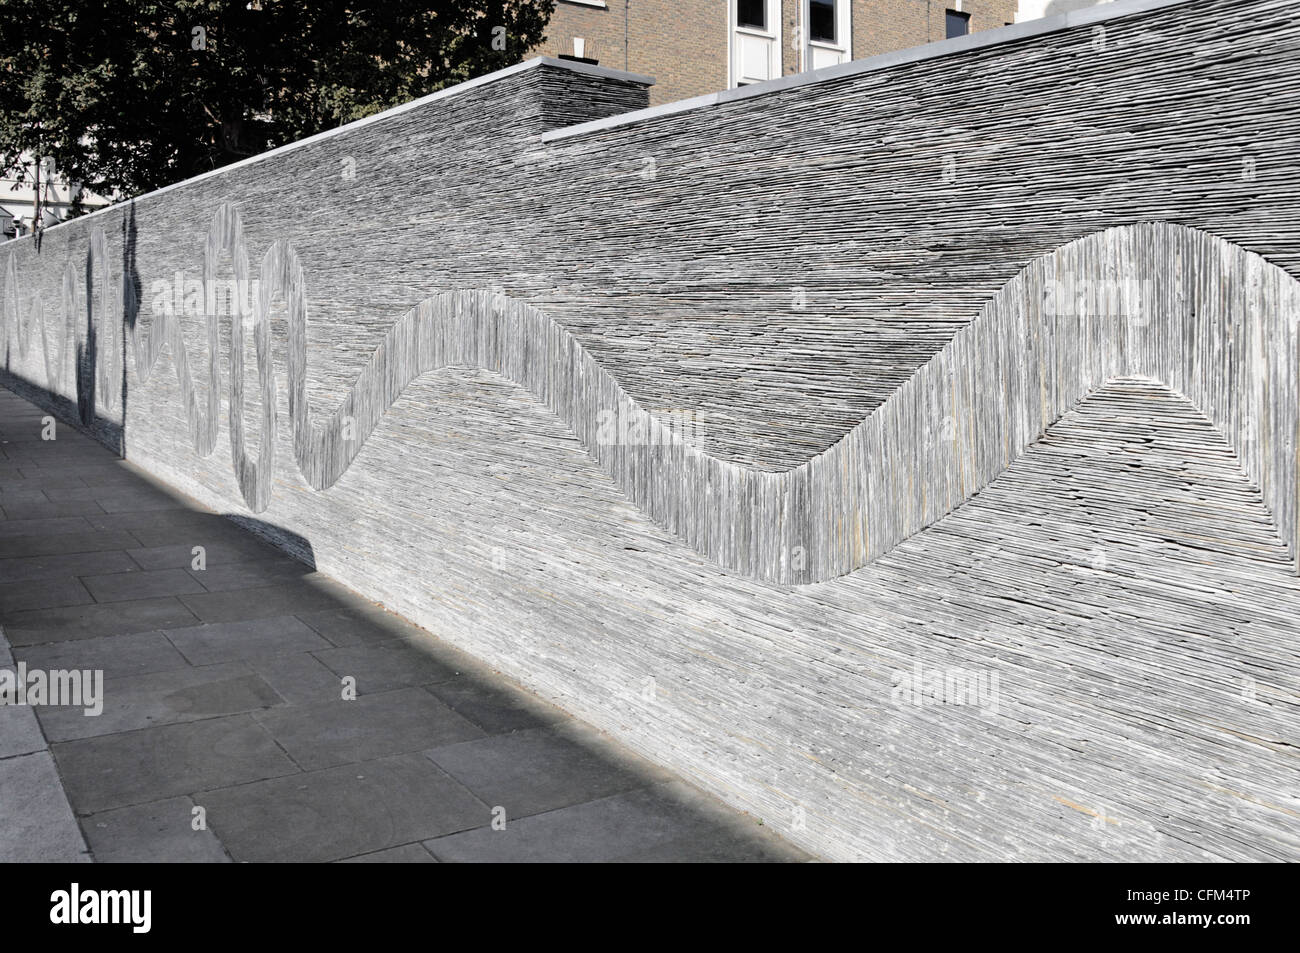 Part of an award winning Slate Wall boundary structure by sculptor